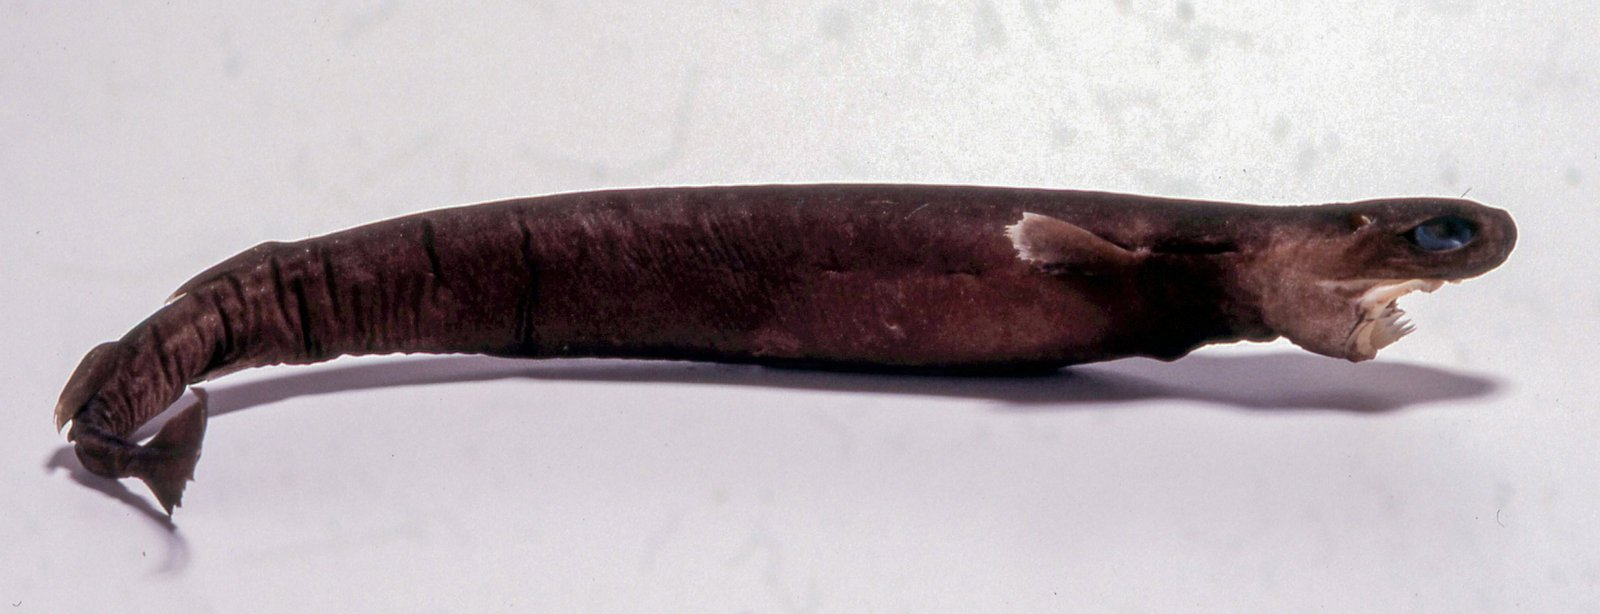 Largetooth Cookie-cutter Shark, Isistius plutodus I.28924-001